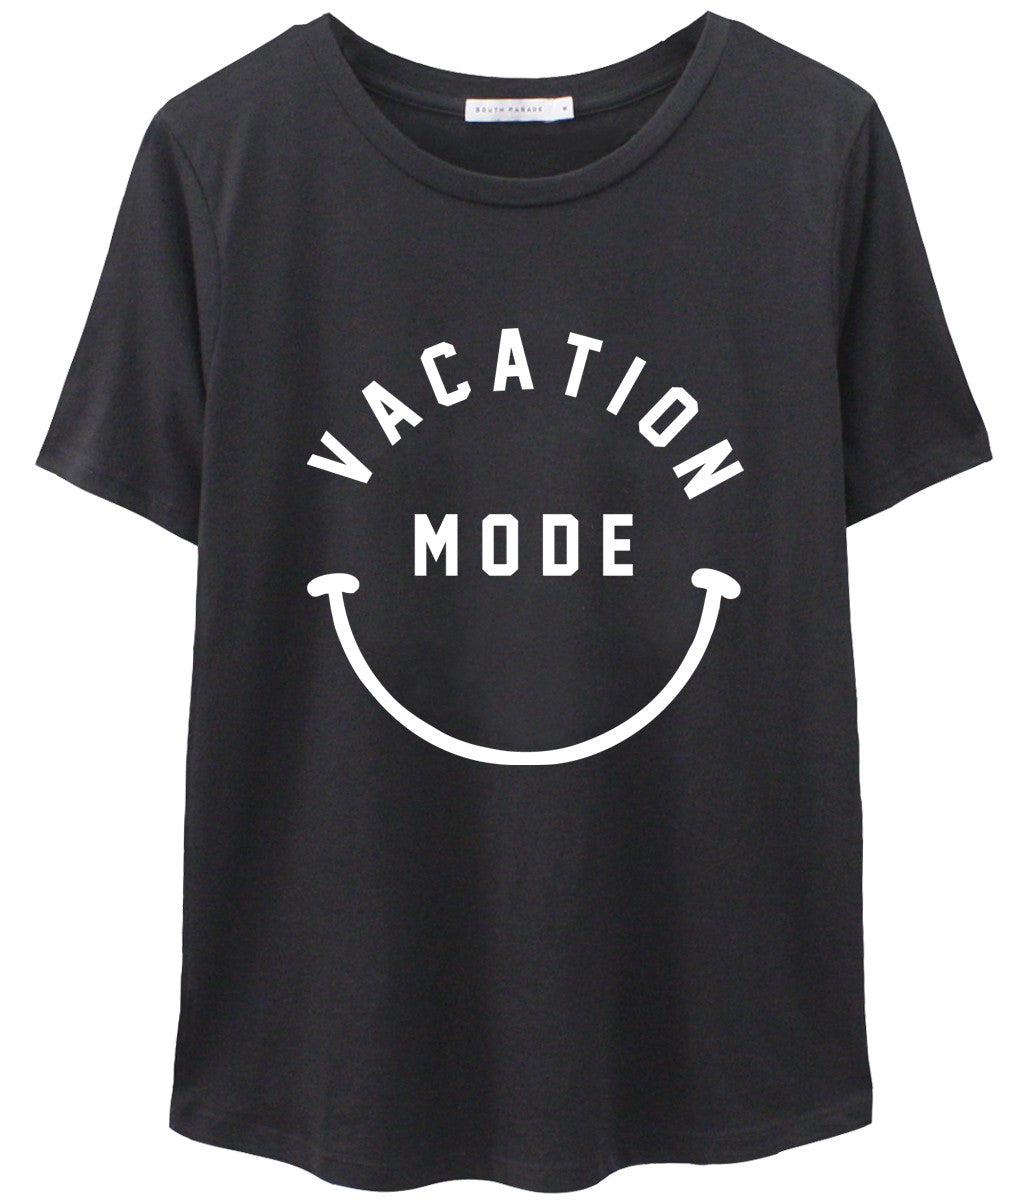 Lola - Loose Tee - Vacation Mode